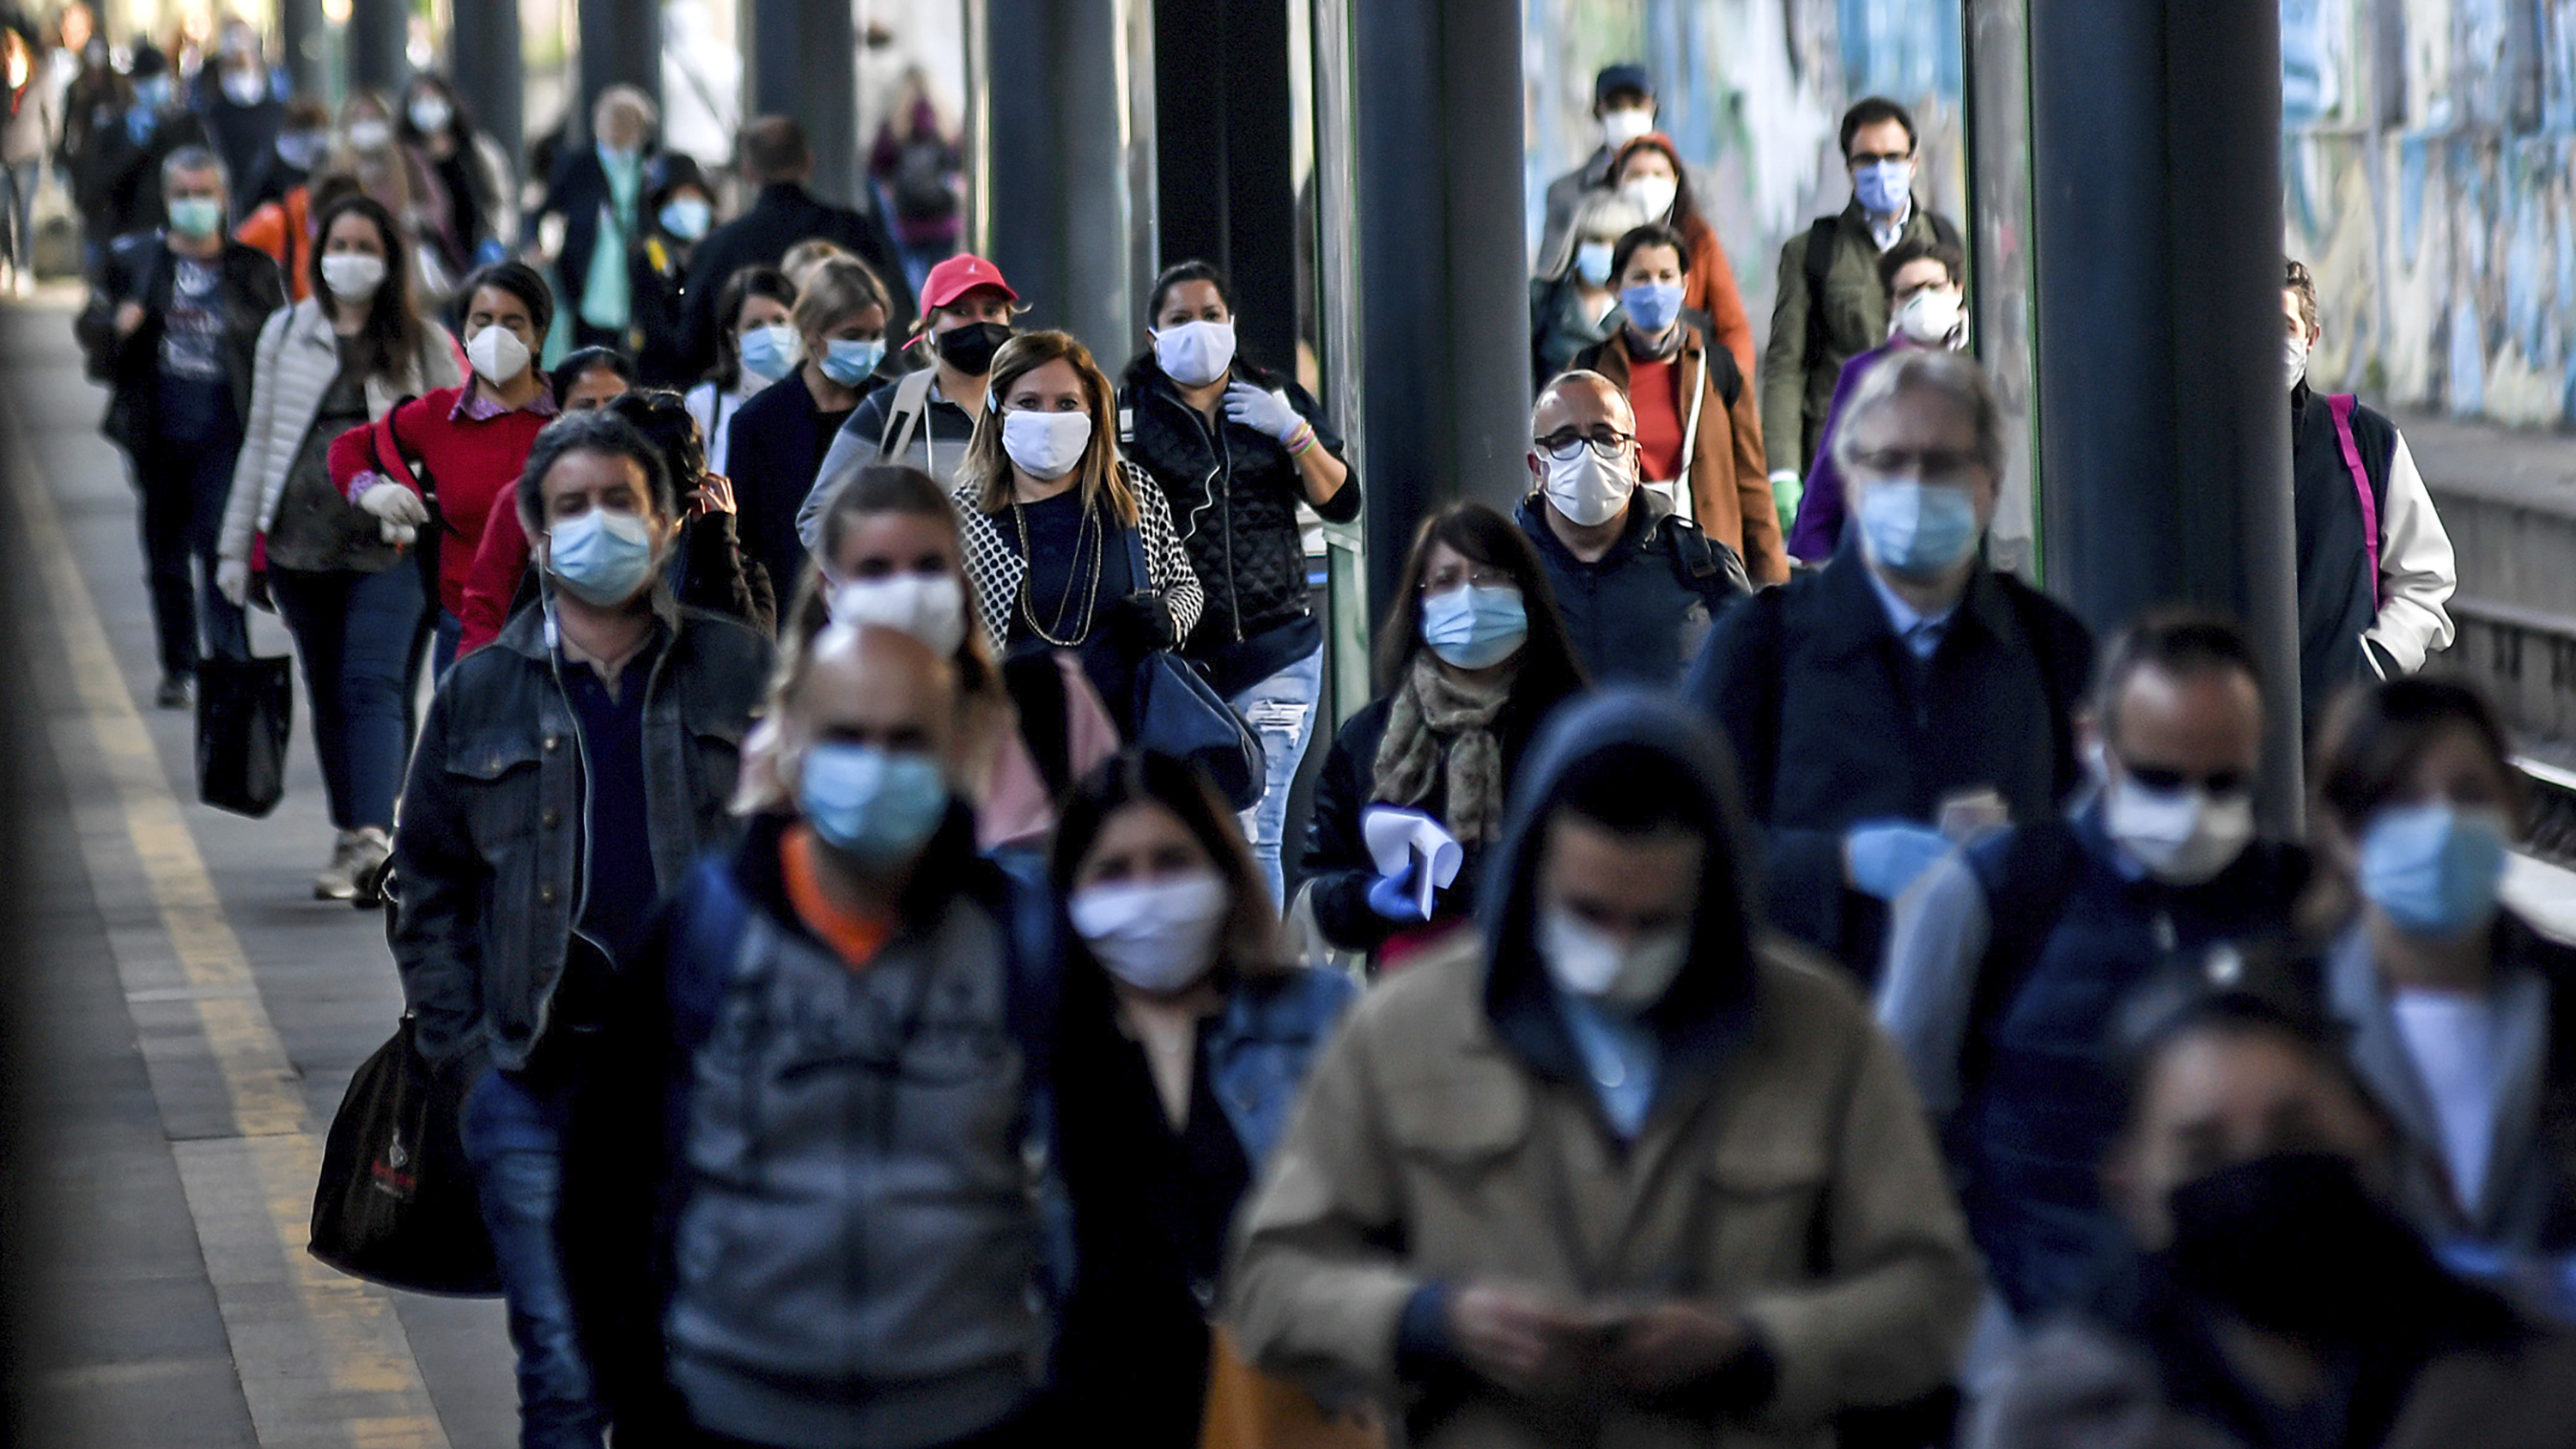 Commuters crowd Cadorna train station in Milan on Monday. Italy has begun stirring again, after a nearly two-month coronavirus shutdown, as restrictions on movement ease.